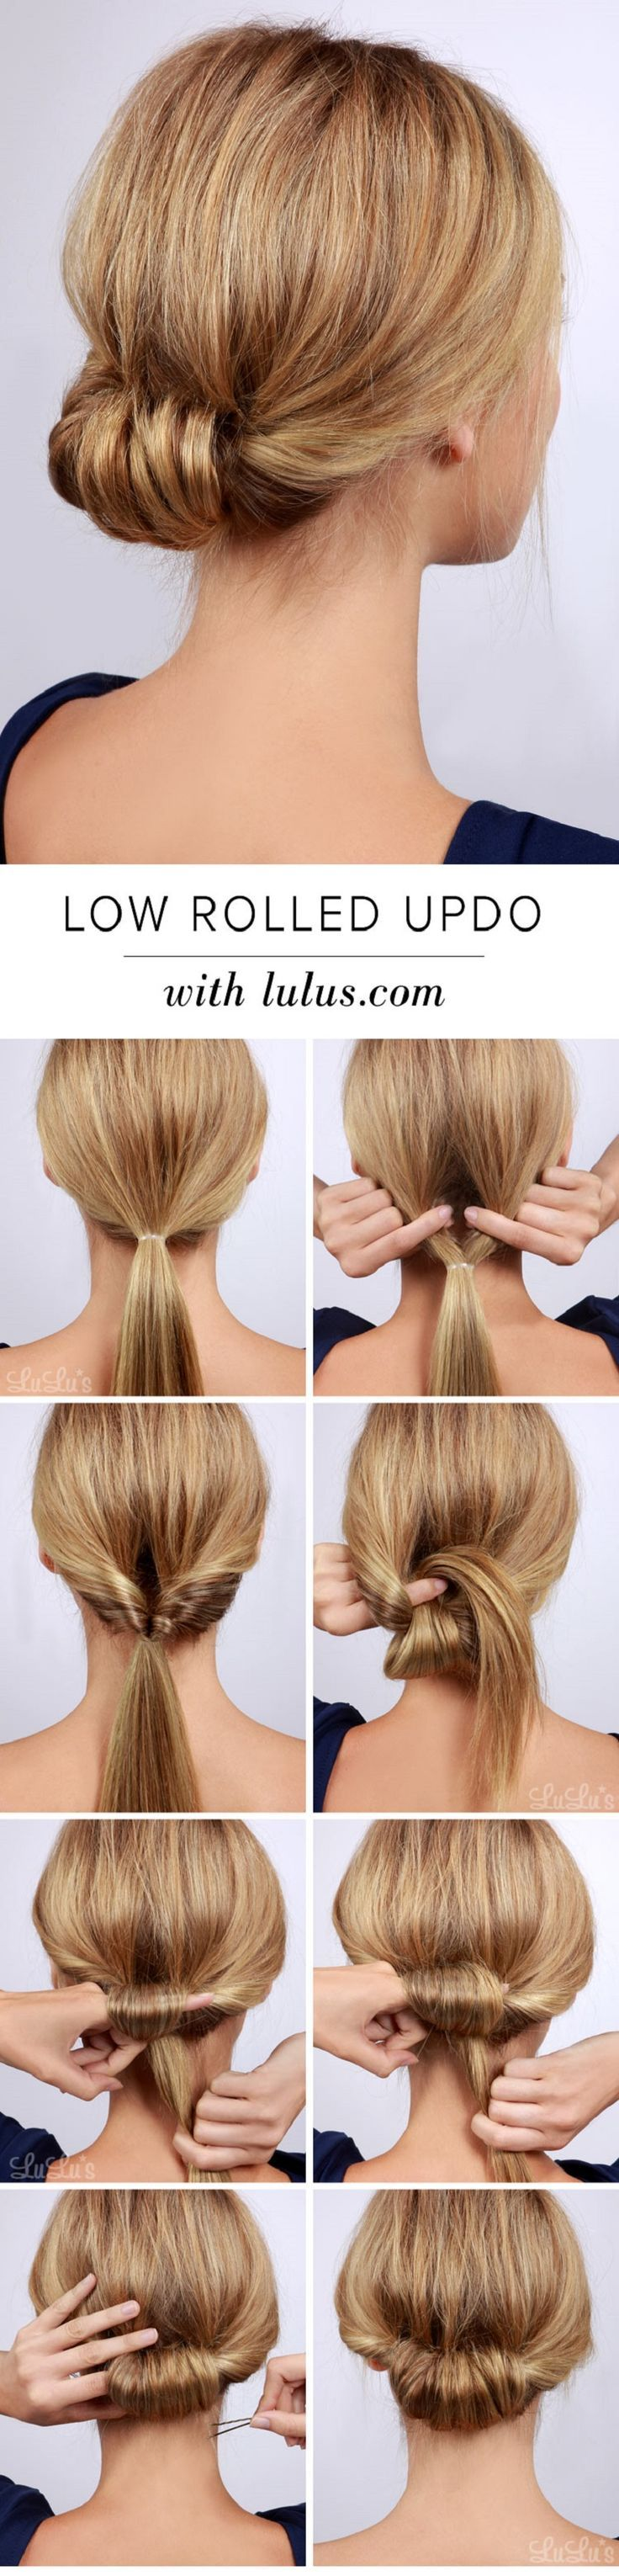 15 Celebrity Inspired Hairstyles You Must Learn Pretty Designs Hair Styles Long Hair Styles Hair Wraps